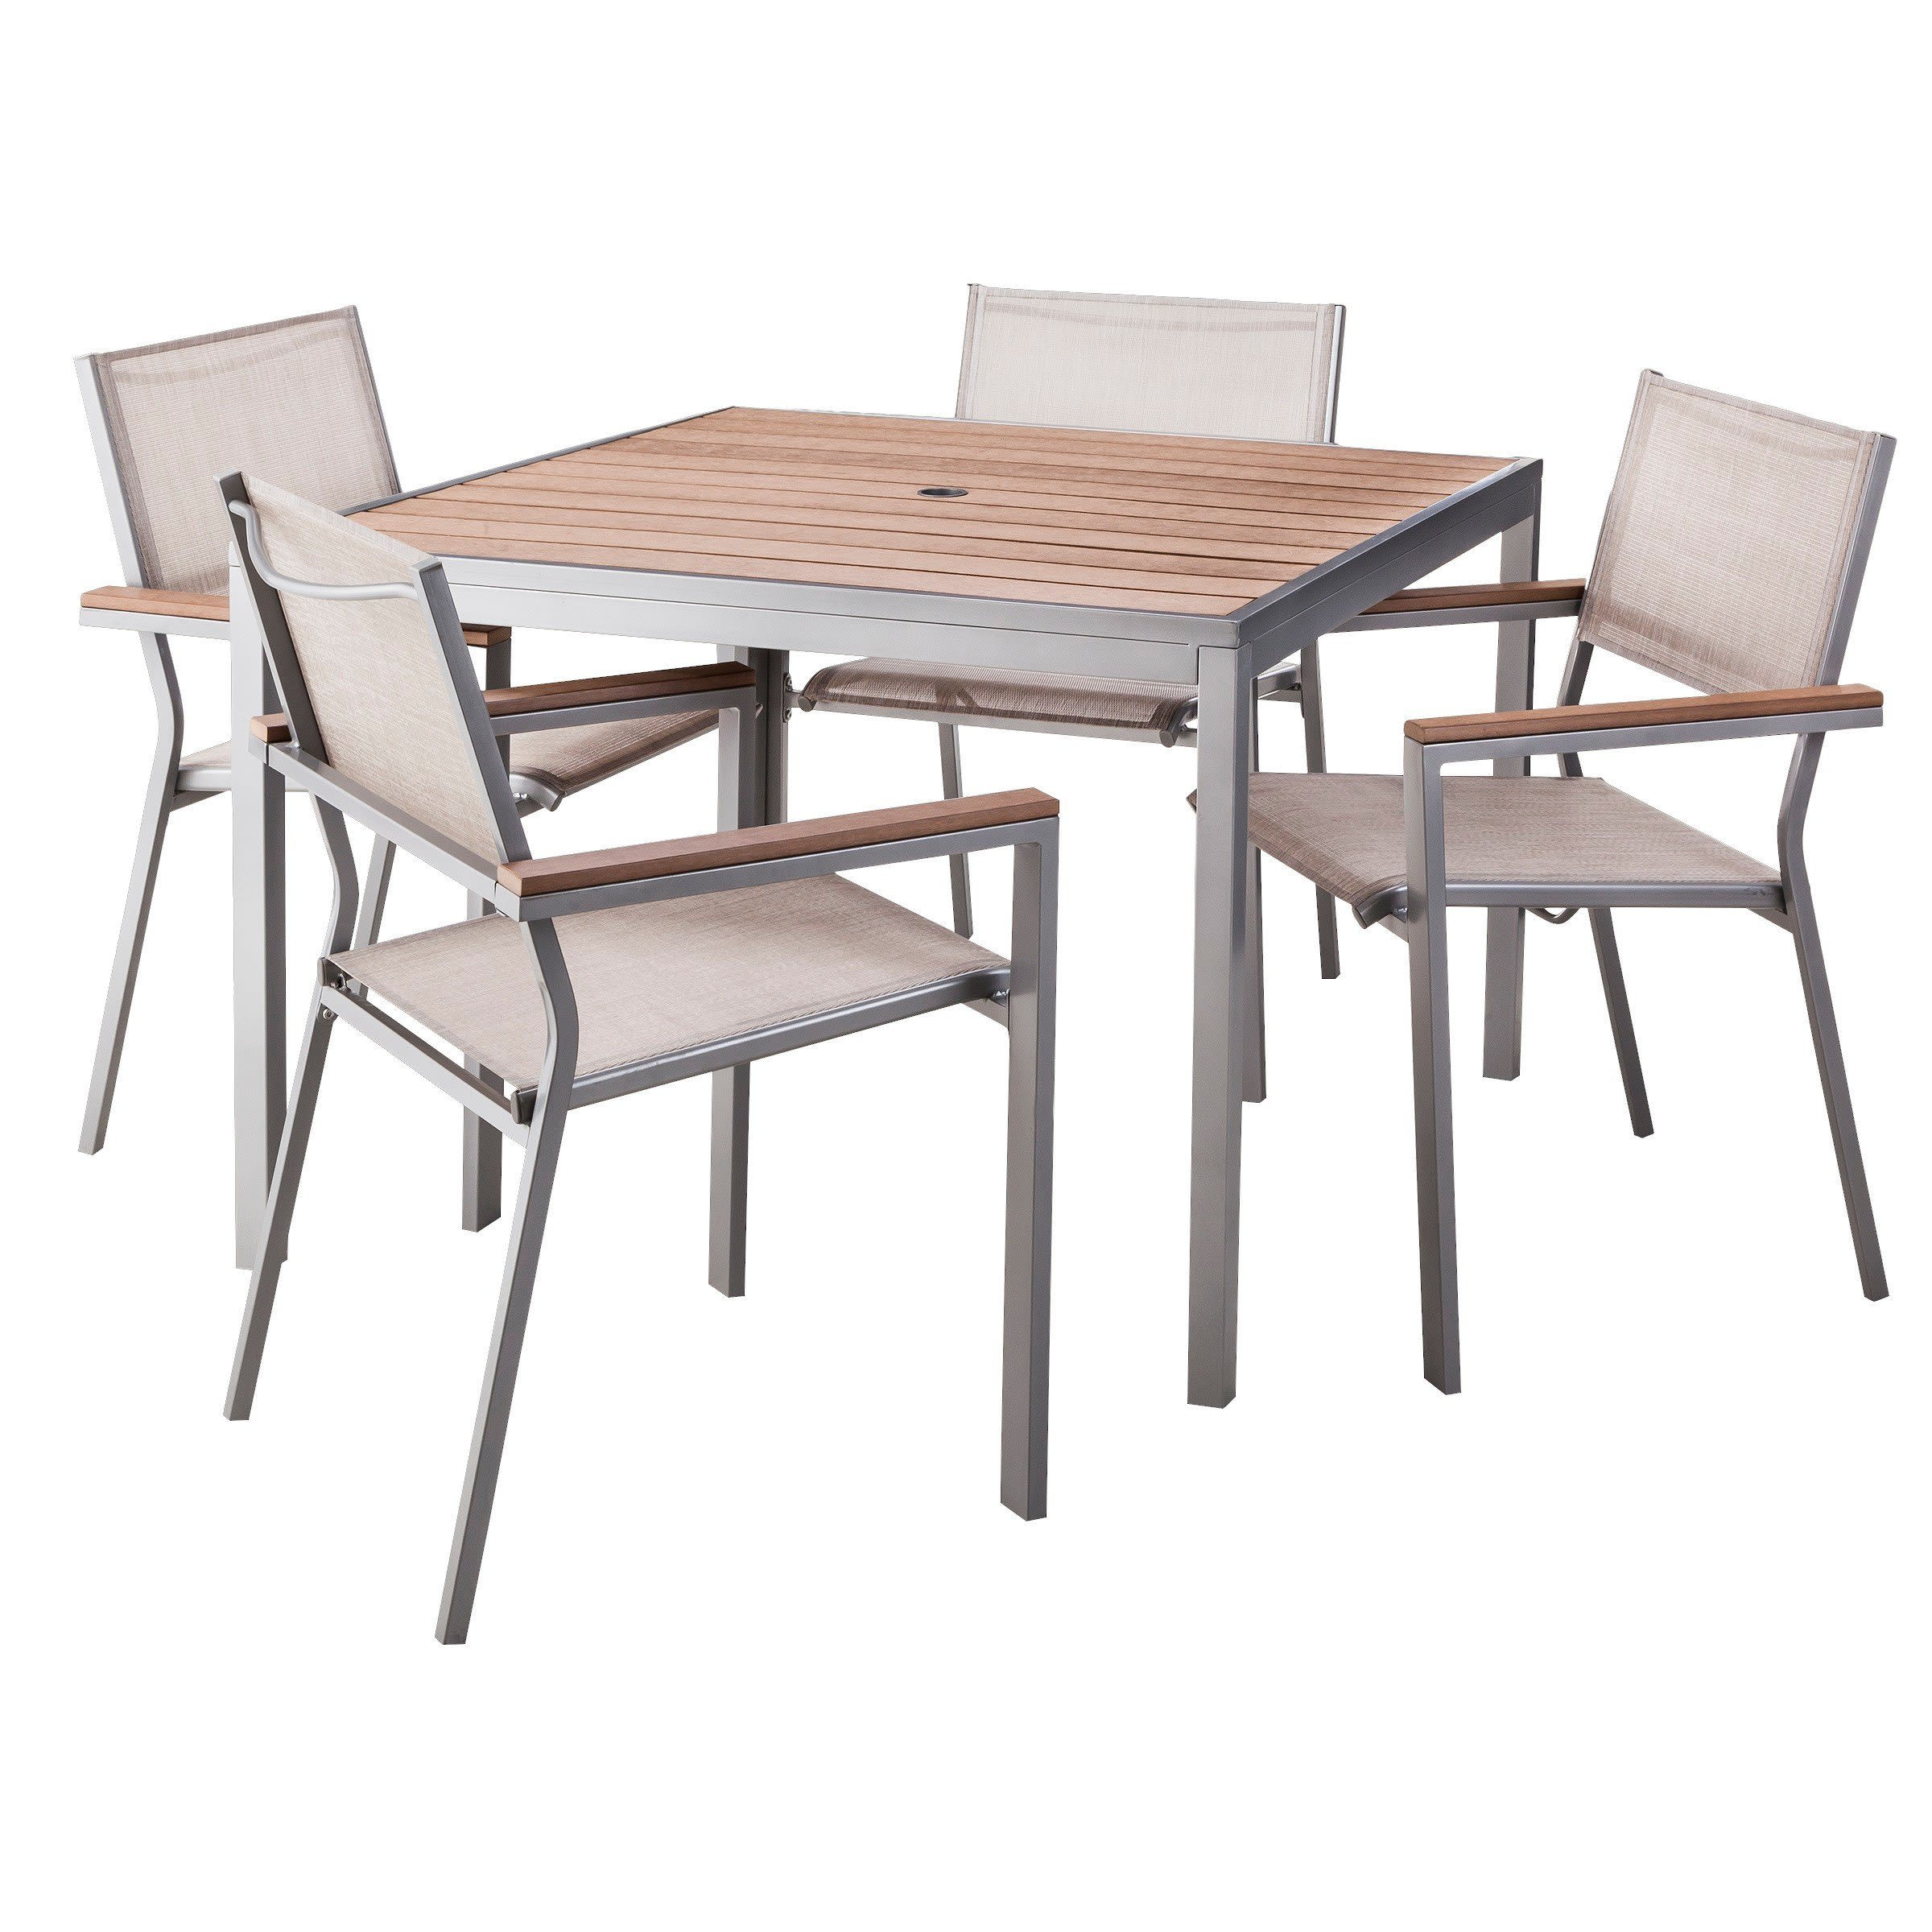 10 Outdoor Dining Tables Amp Dining Sets Under 300 Kitchn